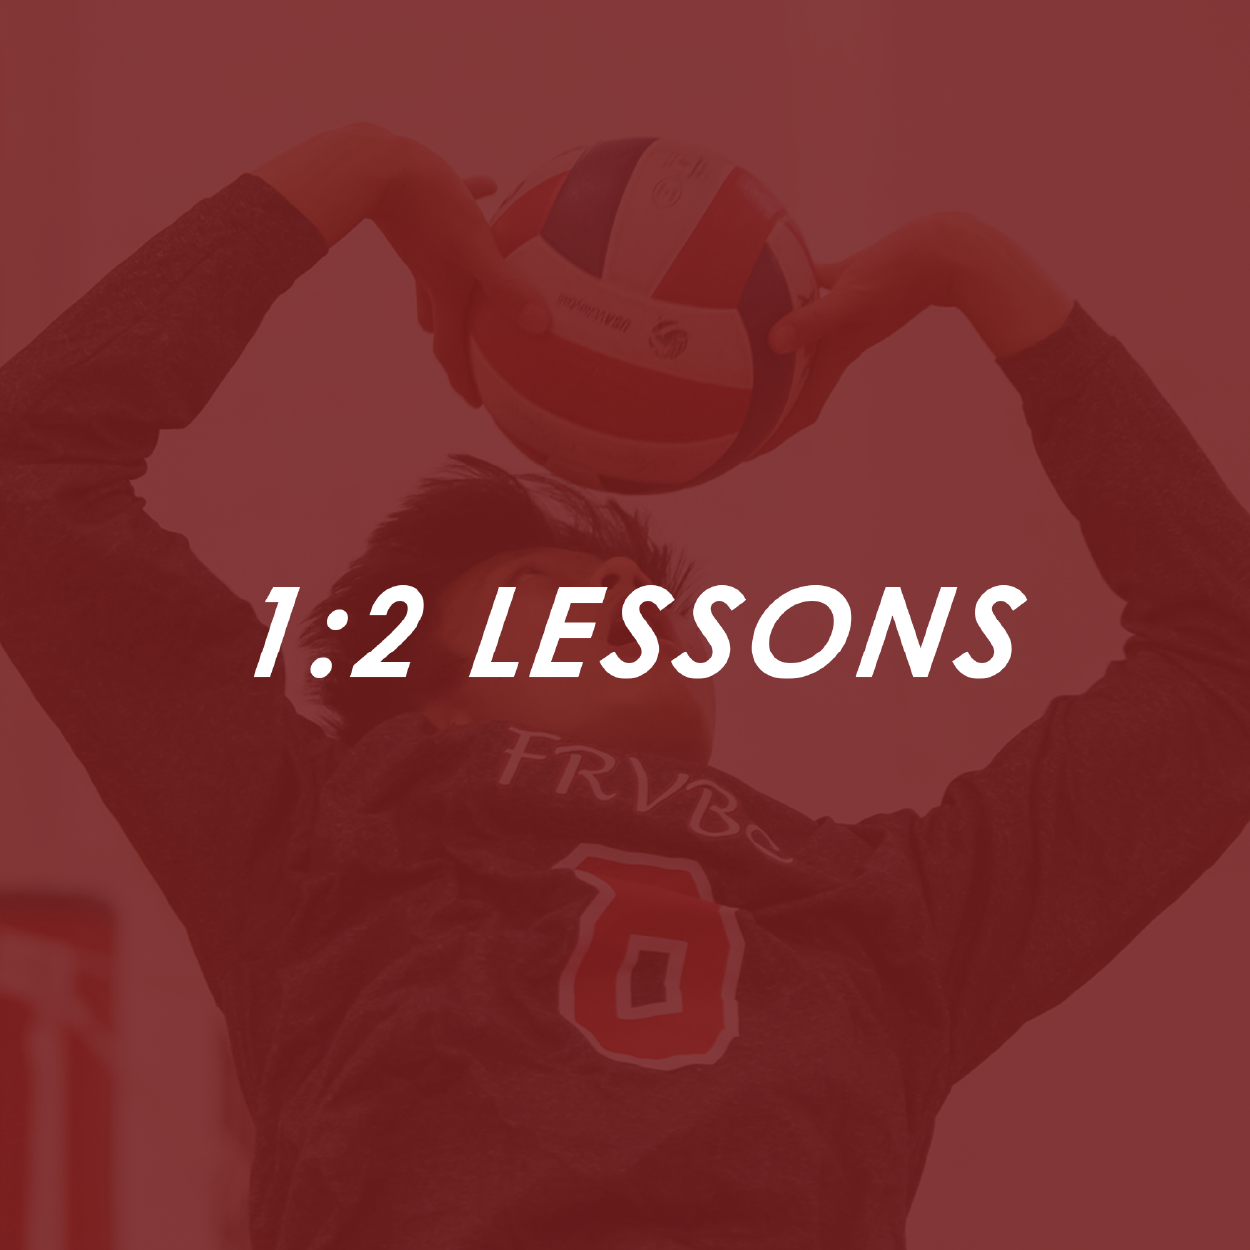 https://frvbc.com/wp-content/uploads/2021/02/FR-Bookings1-2Lessons.png